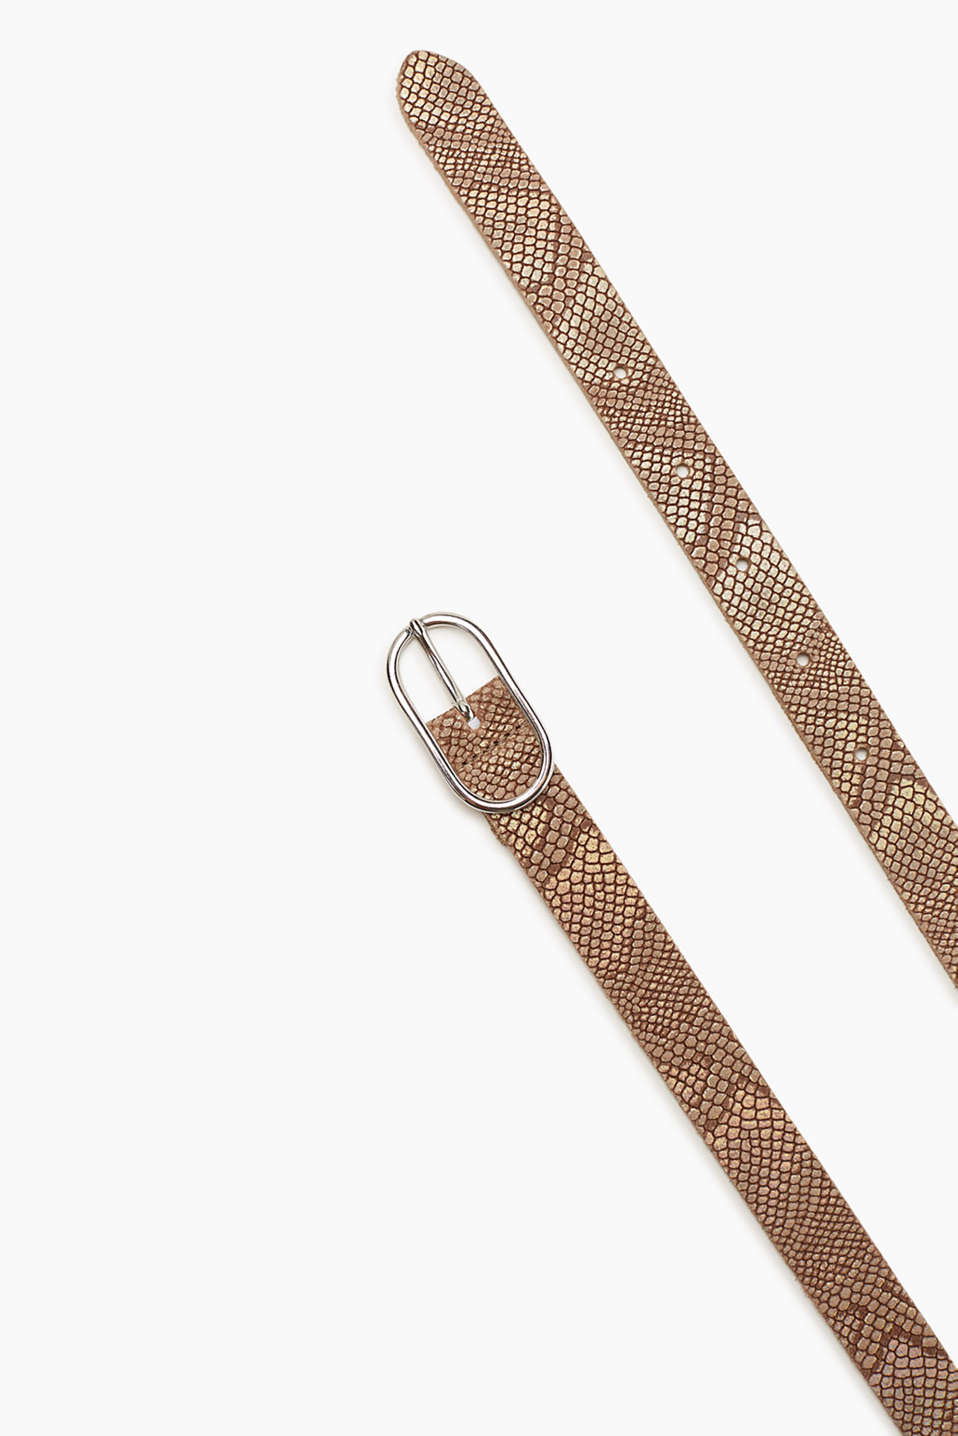 Narrow belt with a metallic, reptile pattern